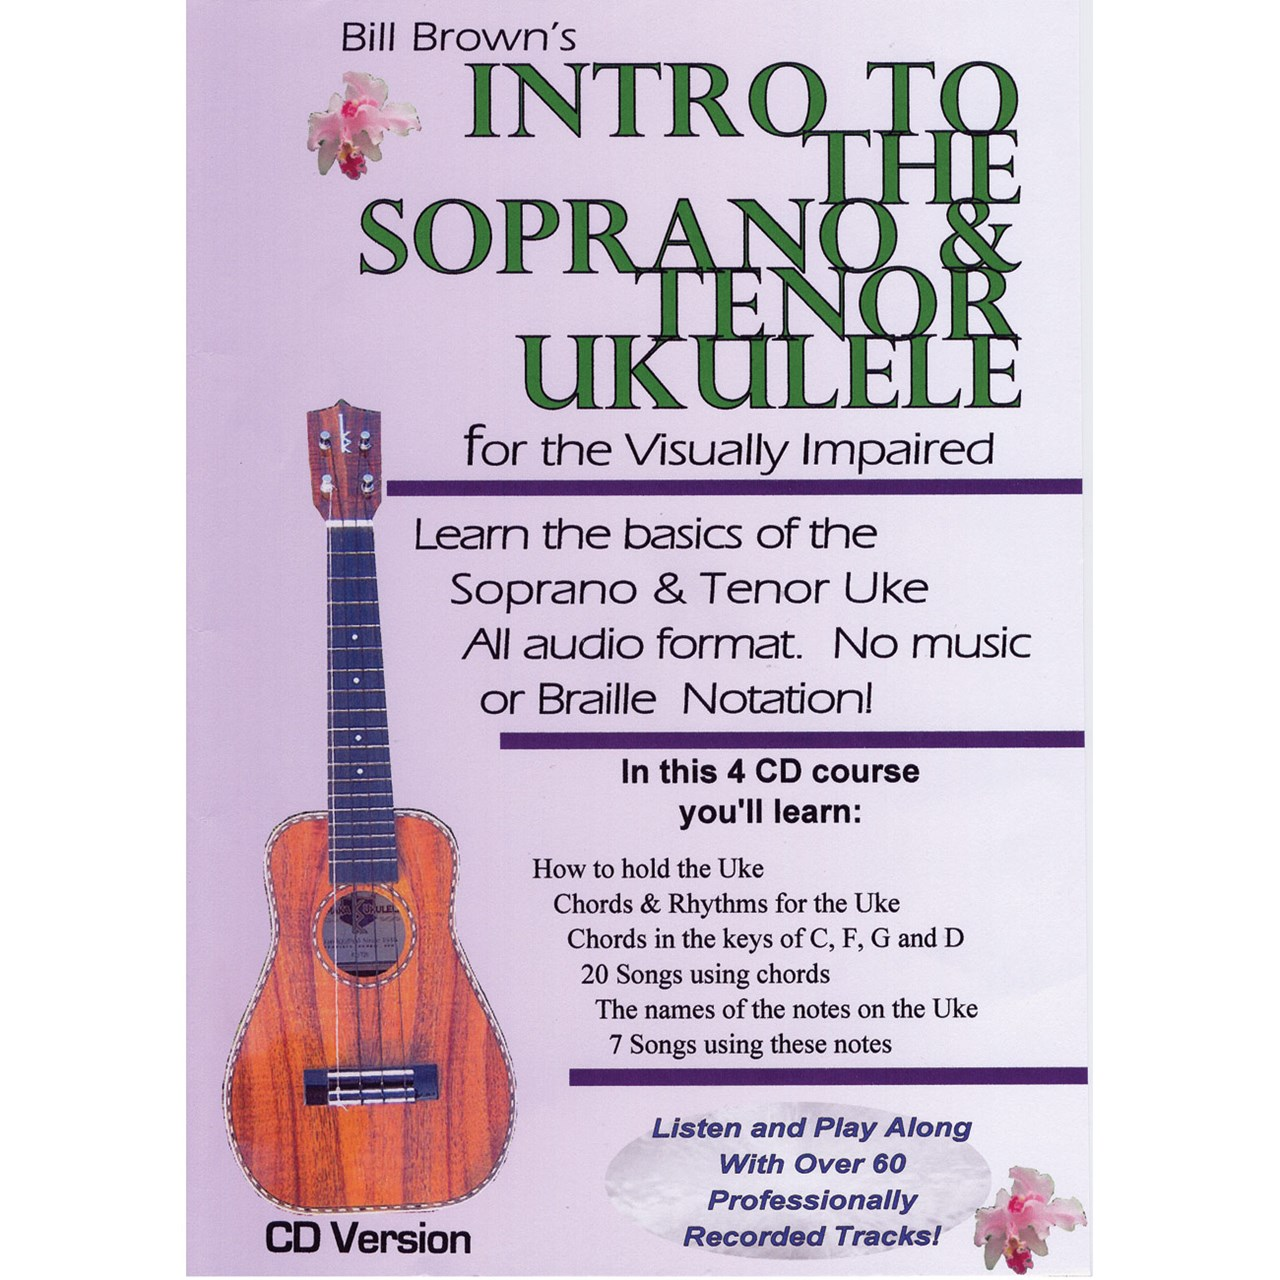 Maxiaids Intro To The Soprano And Tenor Ukulele For The Visually